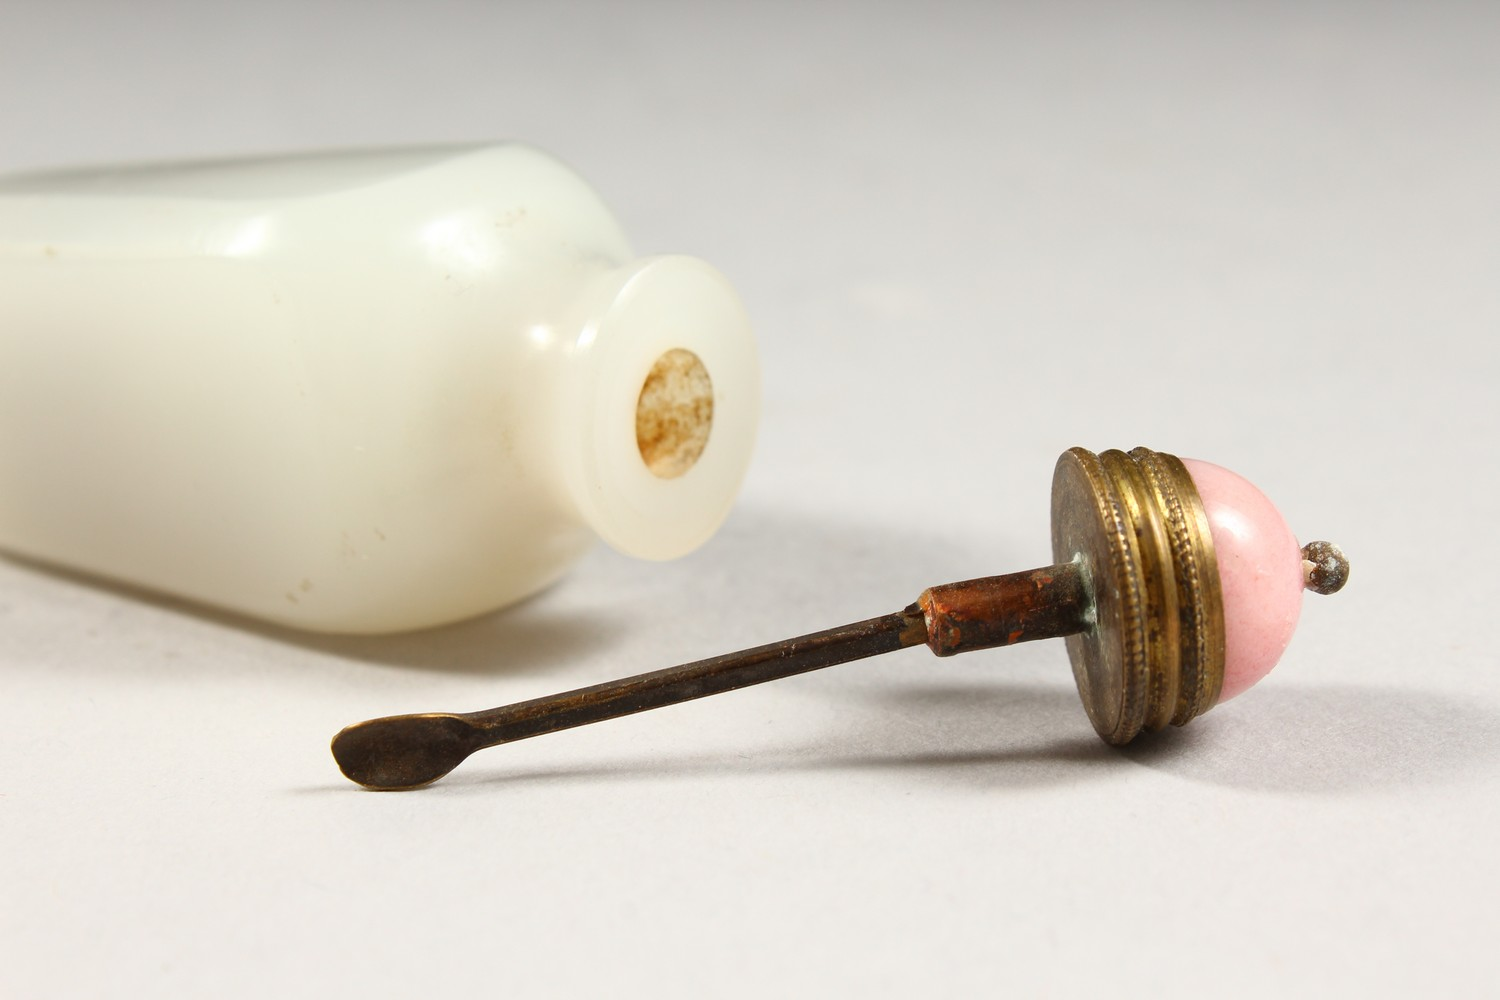 A GOOD CHINESE WHITE JADE / HARD STONE SNUFF BOTTLE, with a pink hard stone stopper and metal spoon, - Image 6 of 9